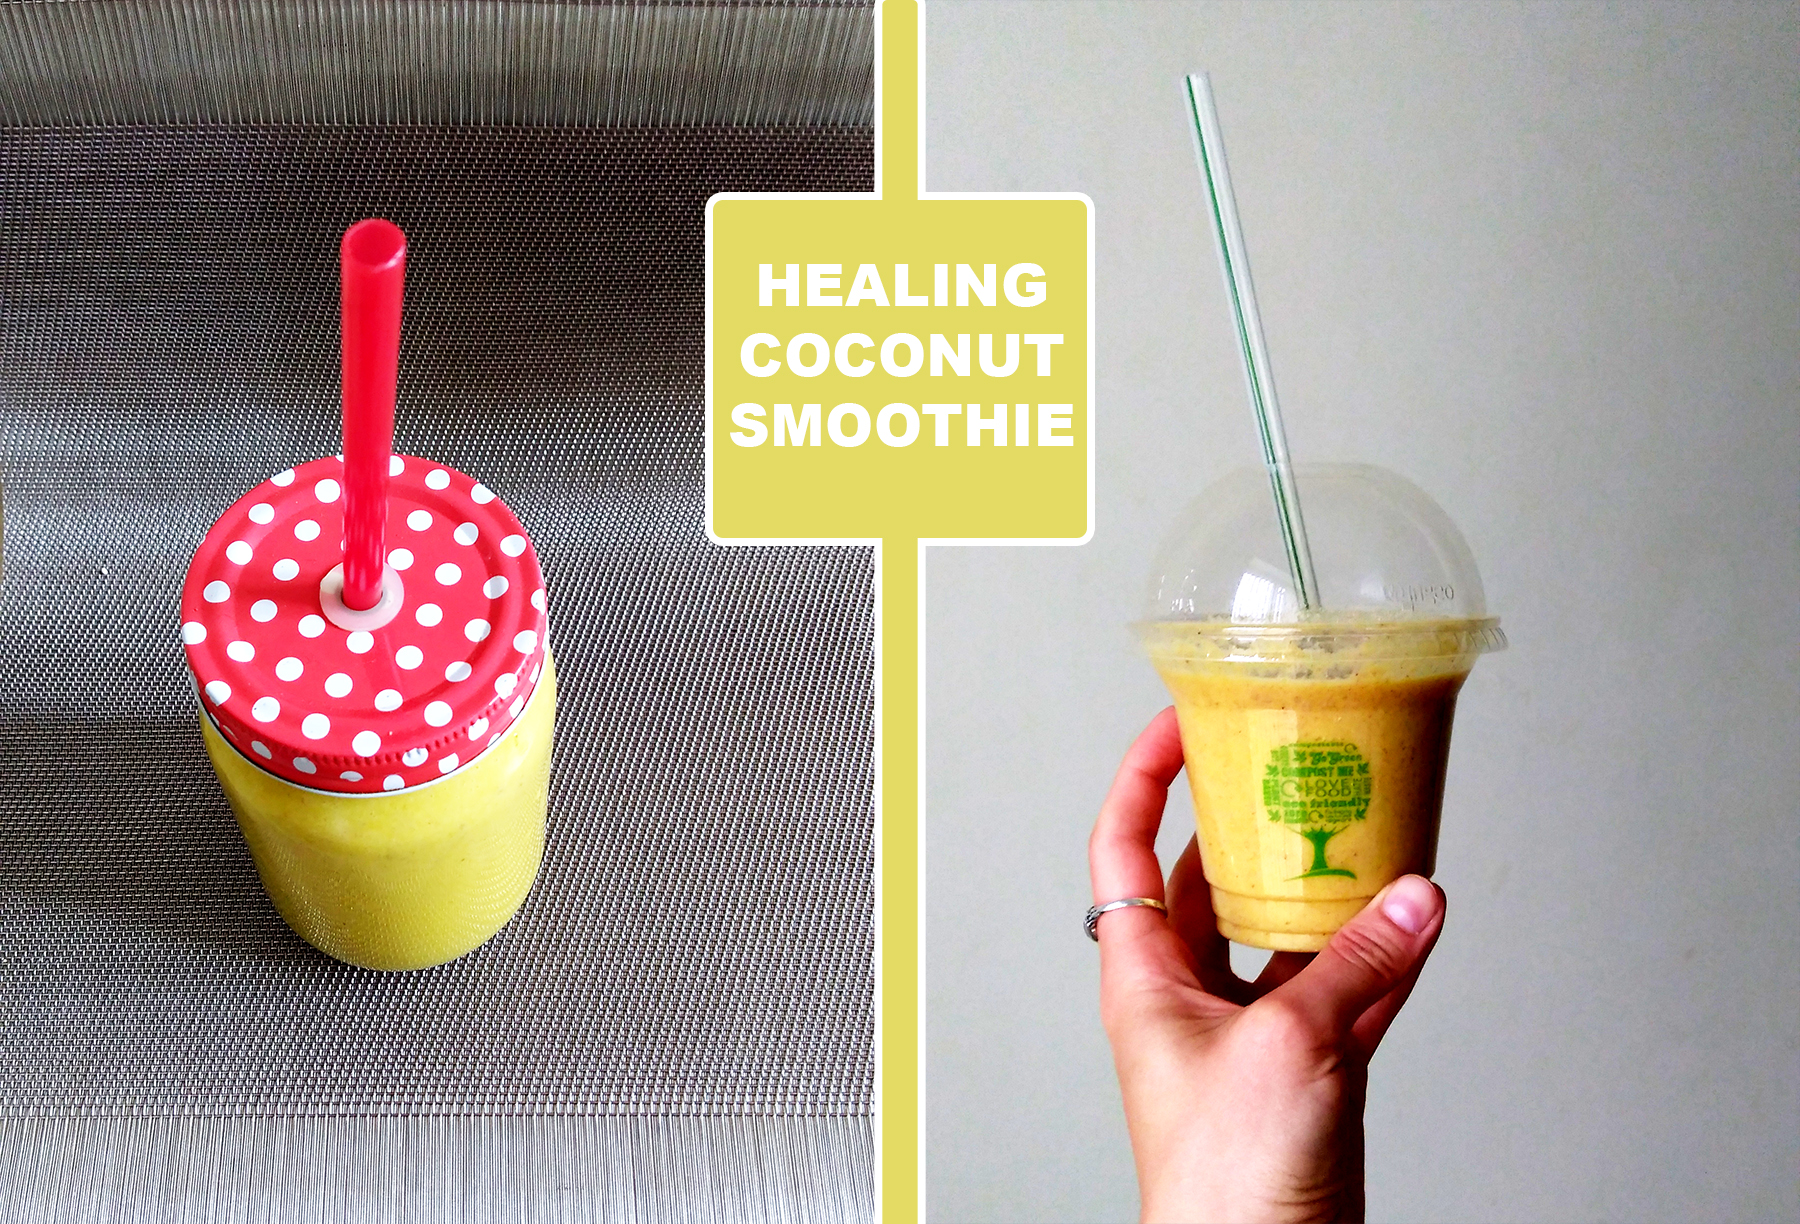 Healing Coconut Smoothie